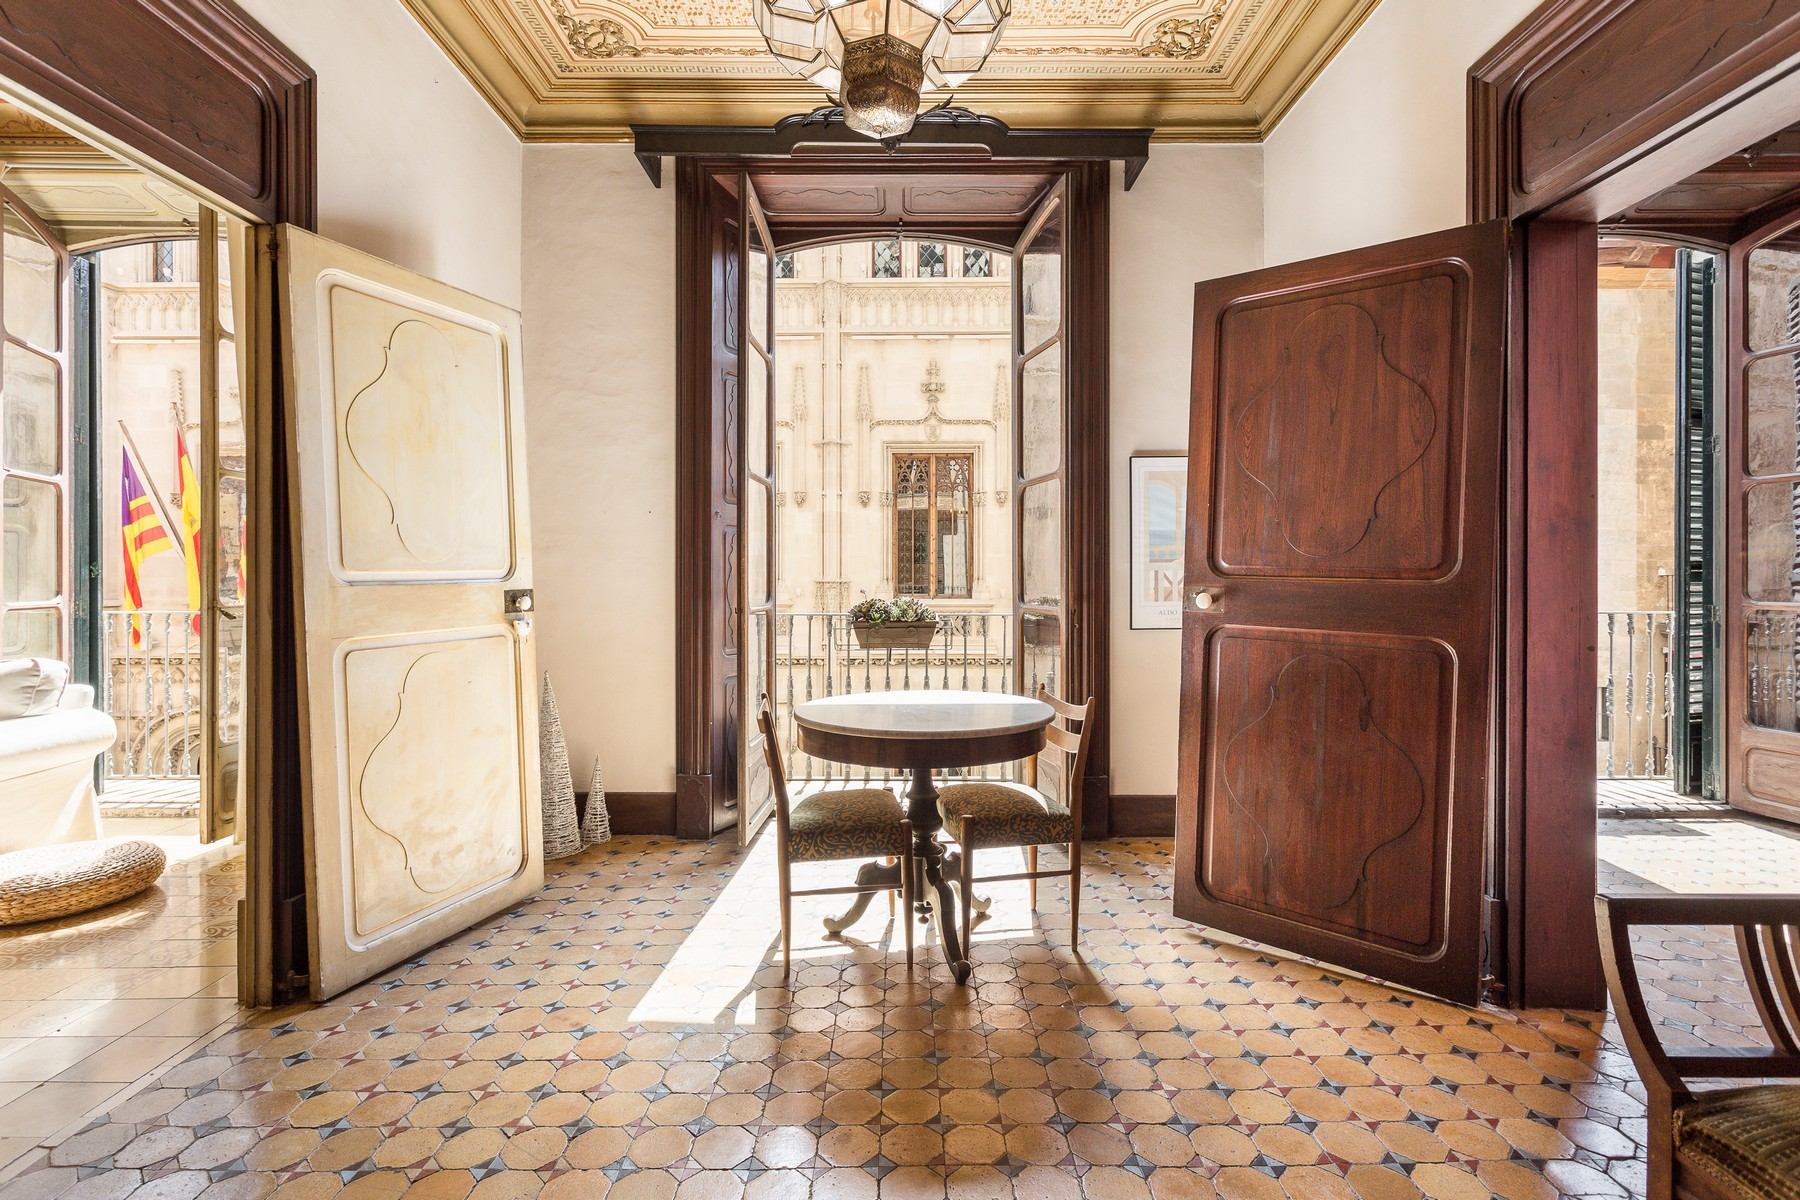 Single Family Home for Sale at Magnificent apartment in the Old Town of Palma Palma, Mallorca 07001 Spain